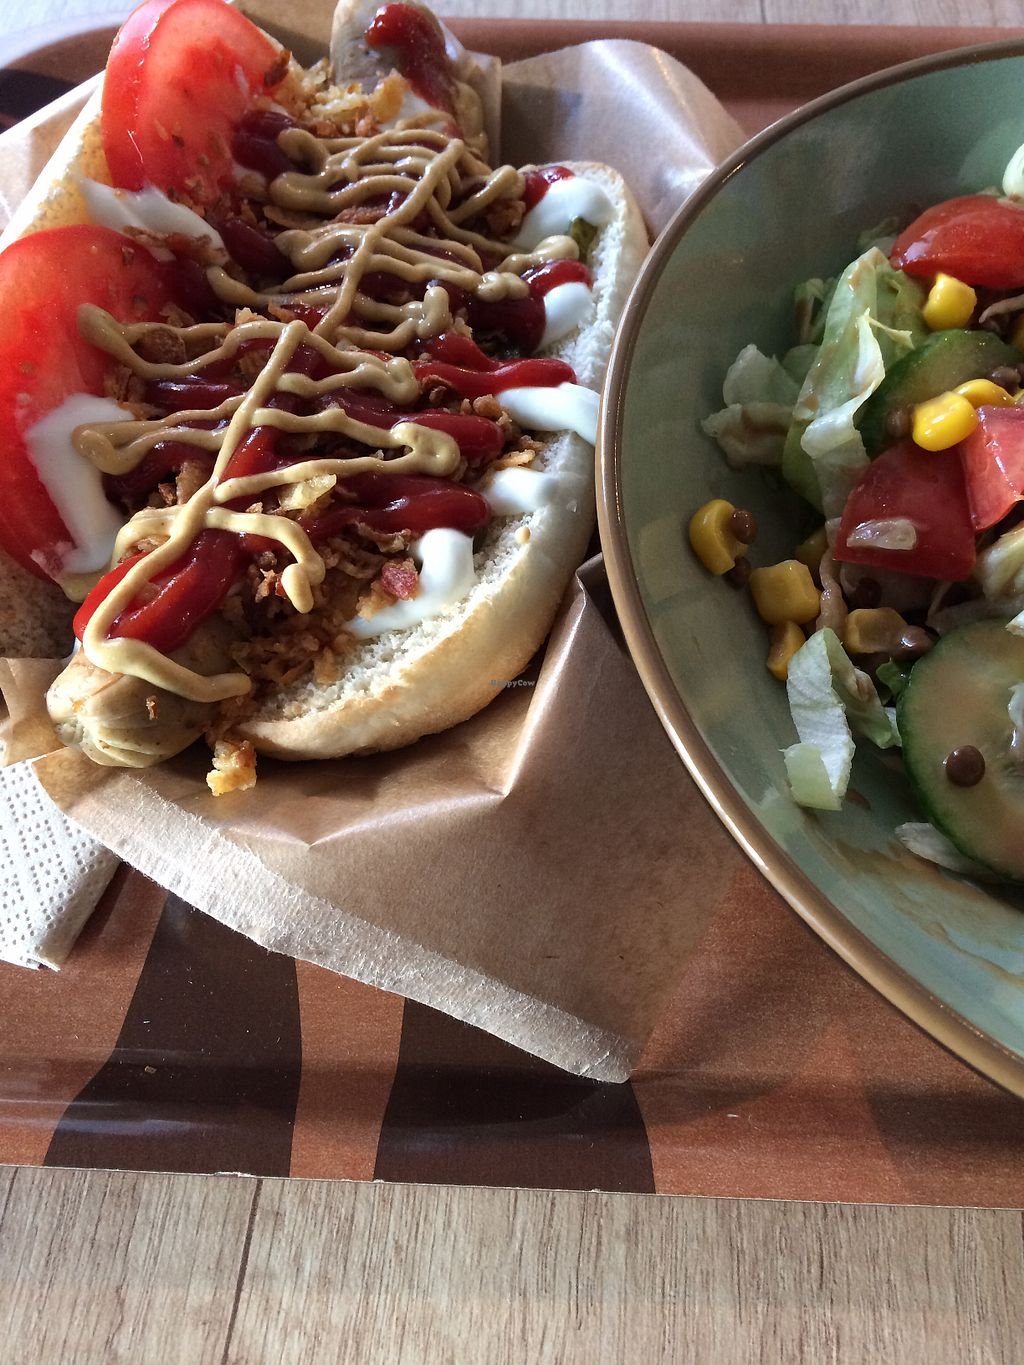 """Photo of Voodies  by <a href=""""/members/profile/siderealfire"""">siderealfire</a> <br/>Vienna not dog with side salad <br/> April 19, 2018  - <a href='/contact/abuse/image/96059/388111'>Report</a>"""